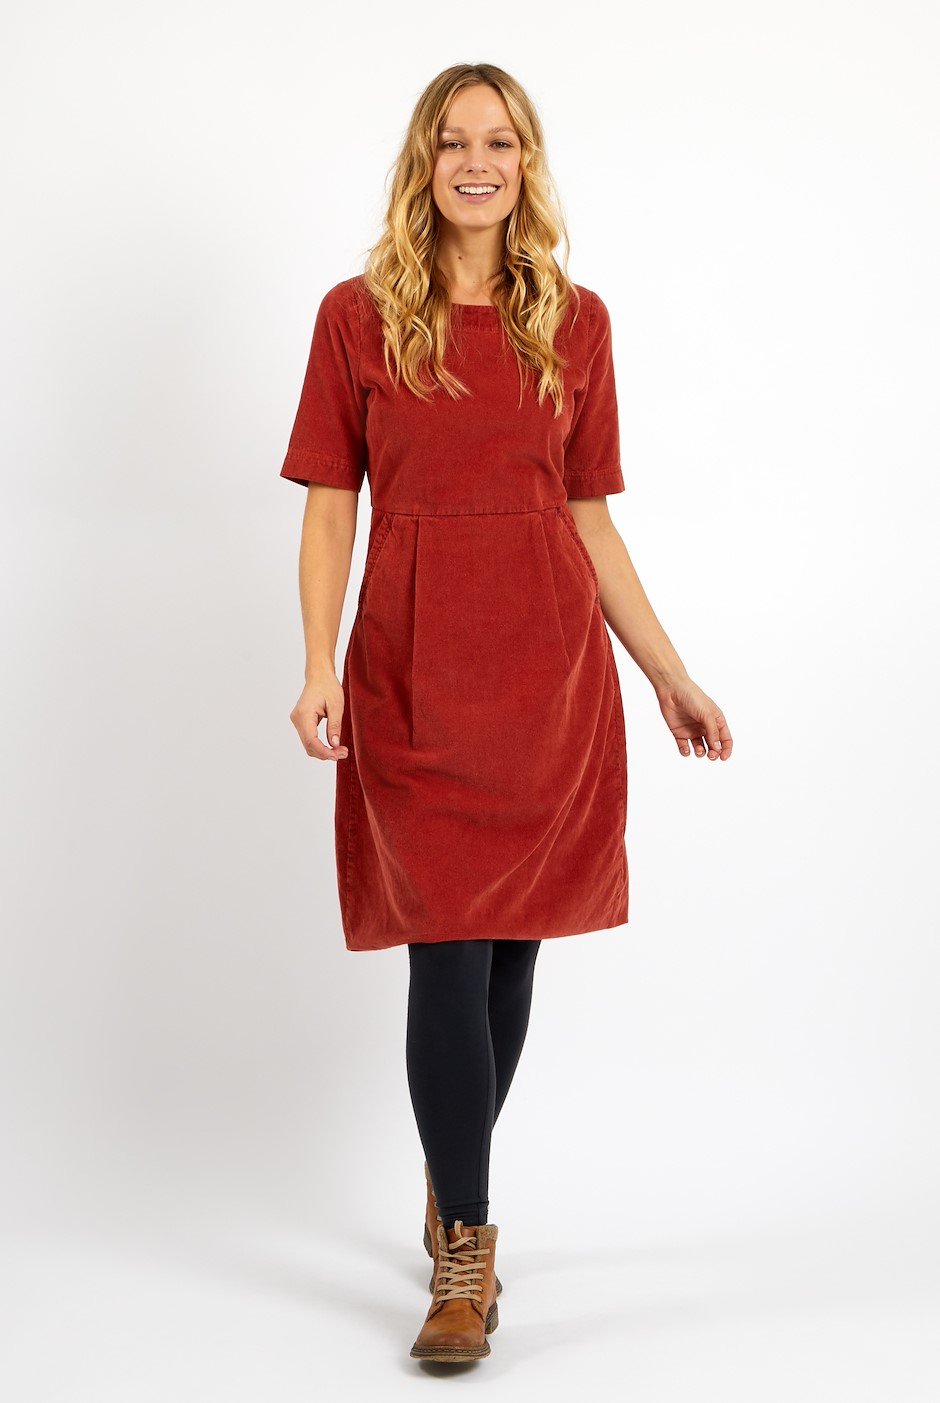 Domino Cord Dress Chilli Red